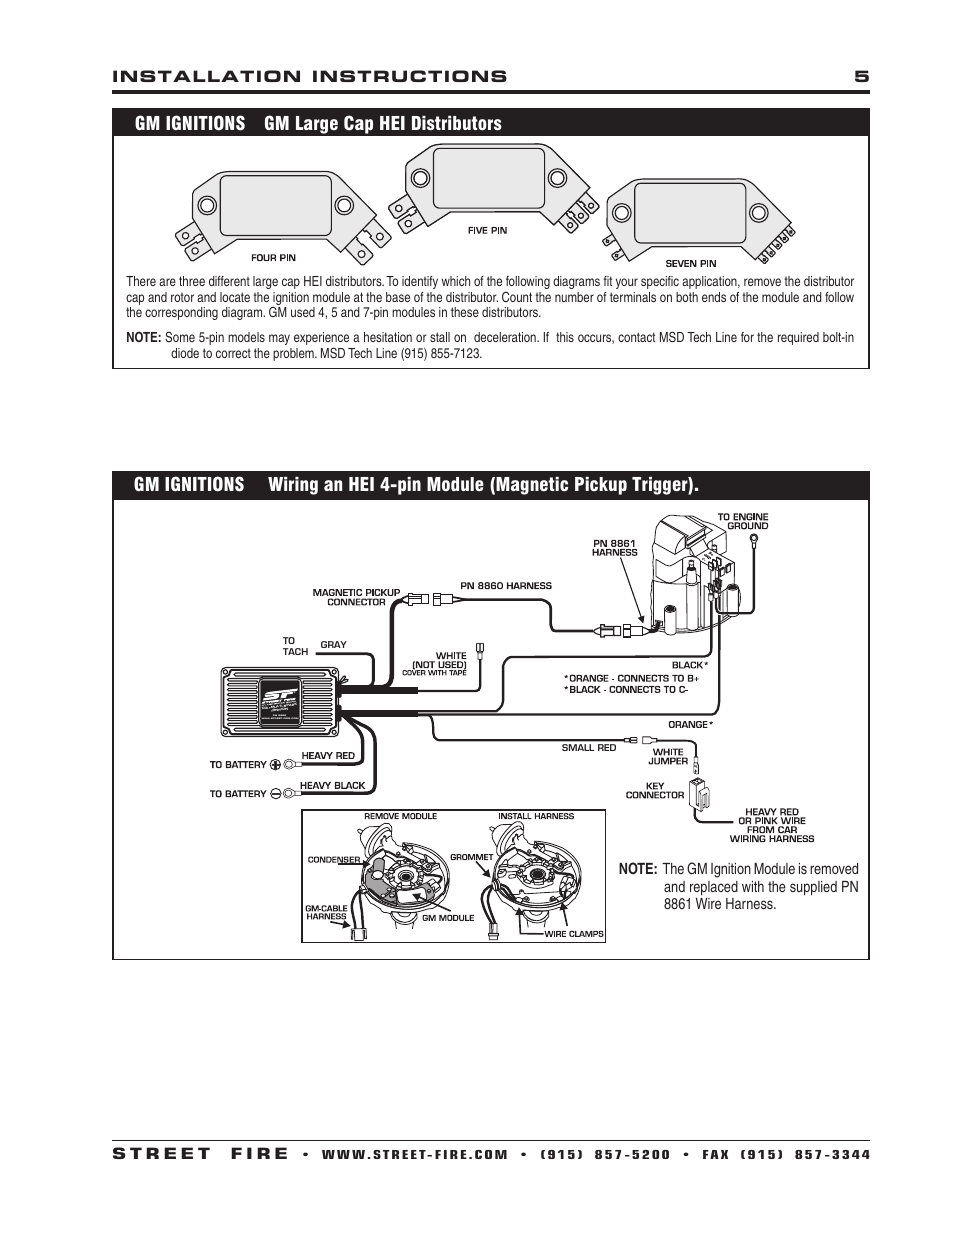 Chevy Msd Wiring Diagram from lh5.googleusercontent.com